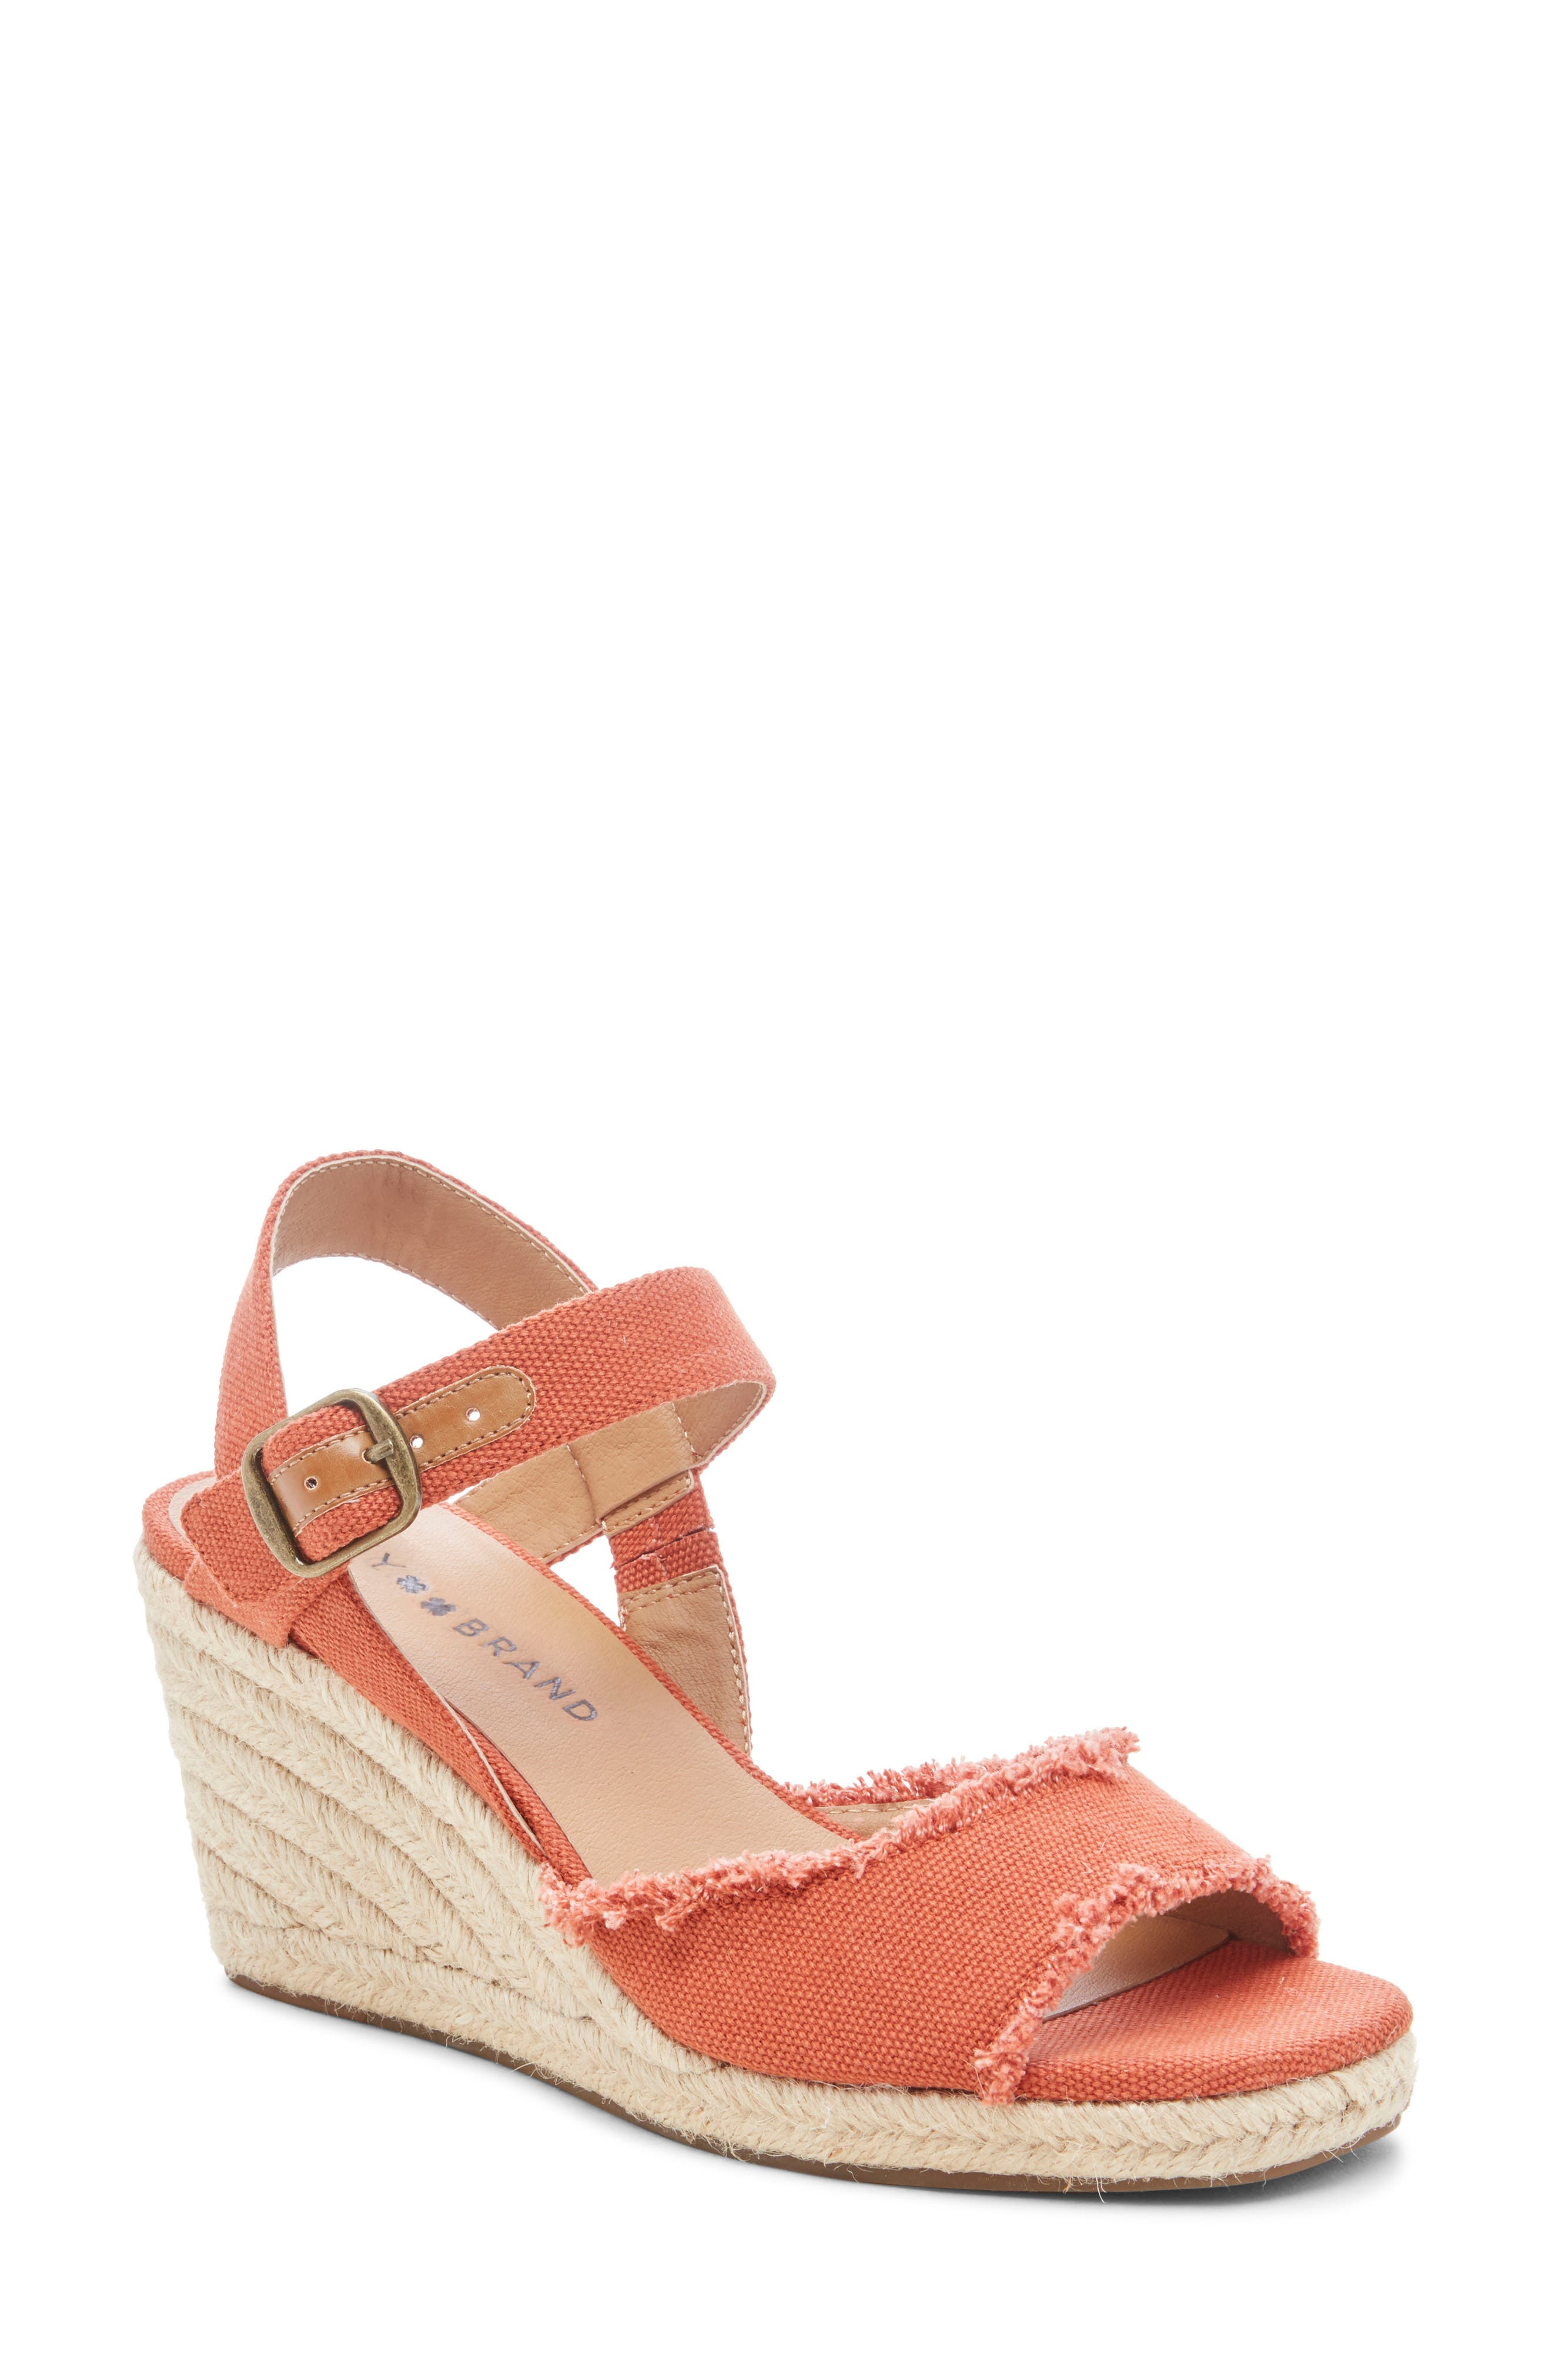 5f8c76a1f9fd5 Women's Orange Lucky Brand Shoes | Nordstrom